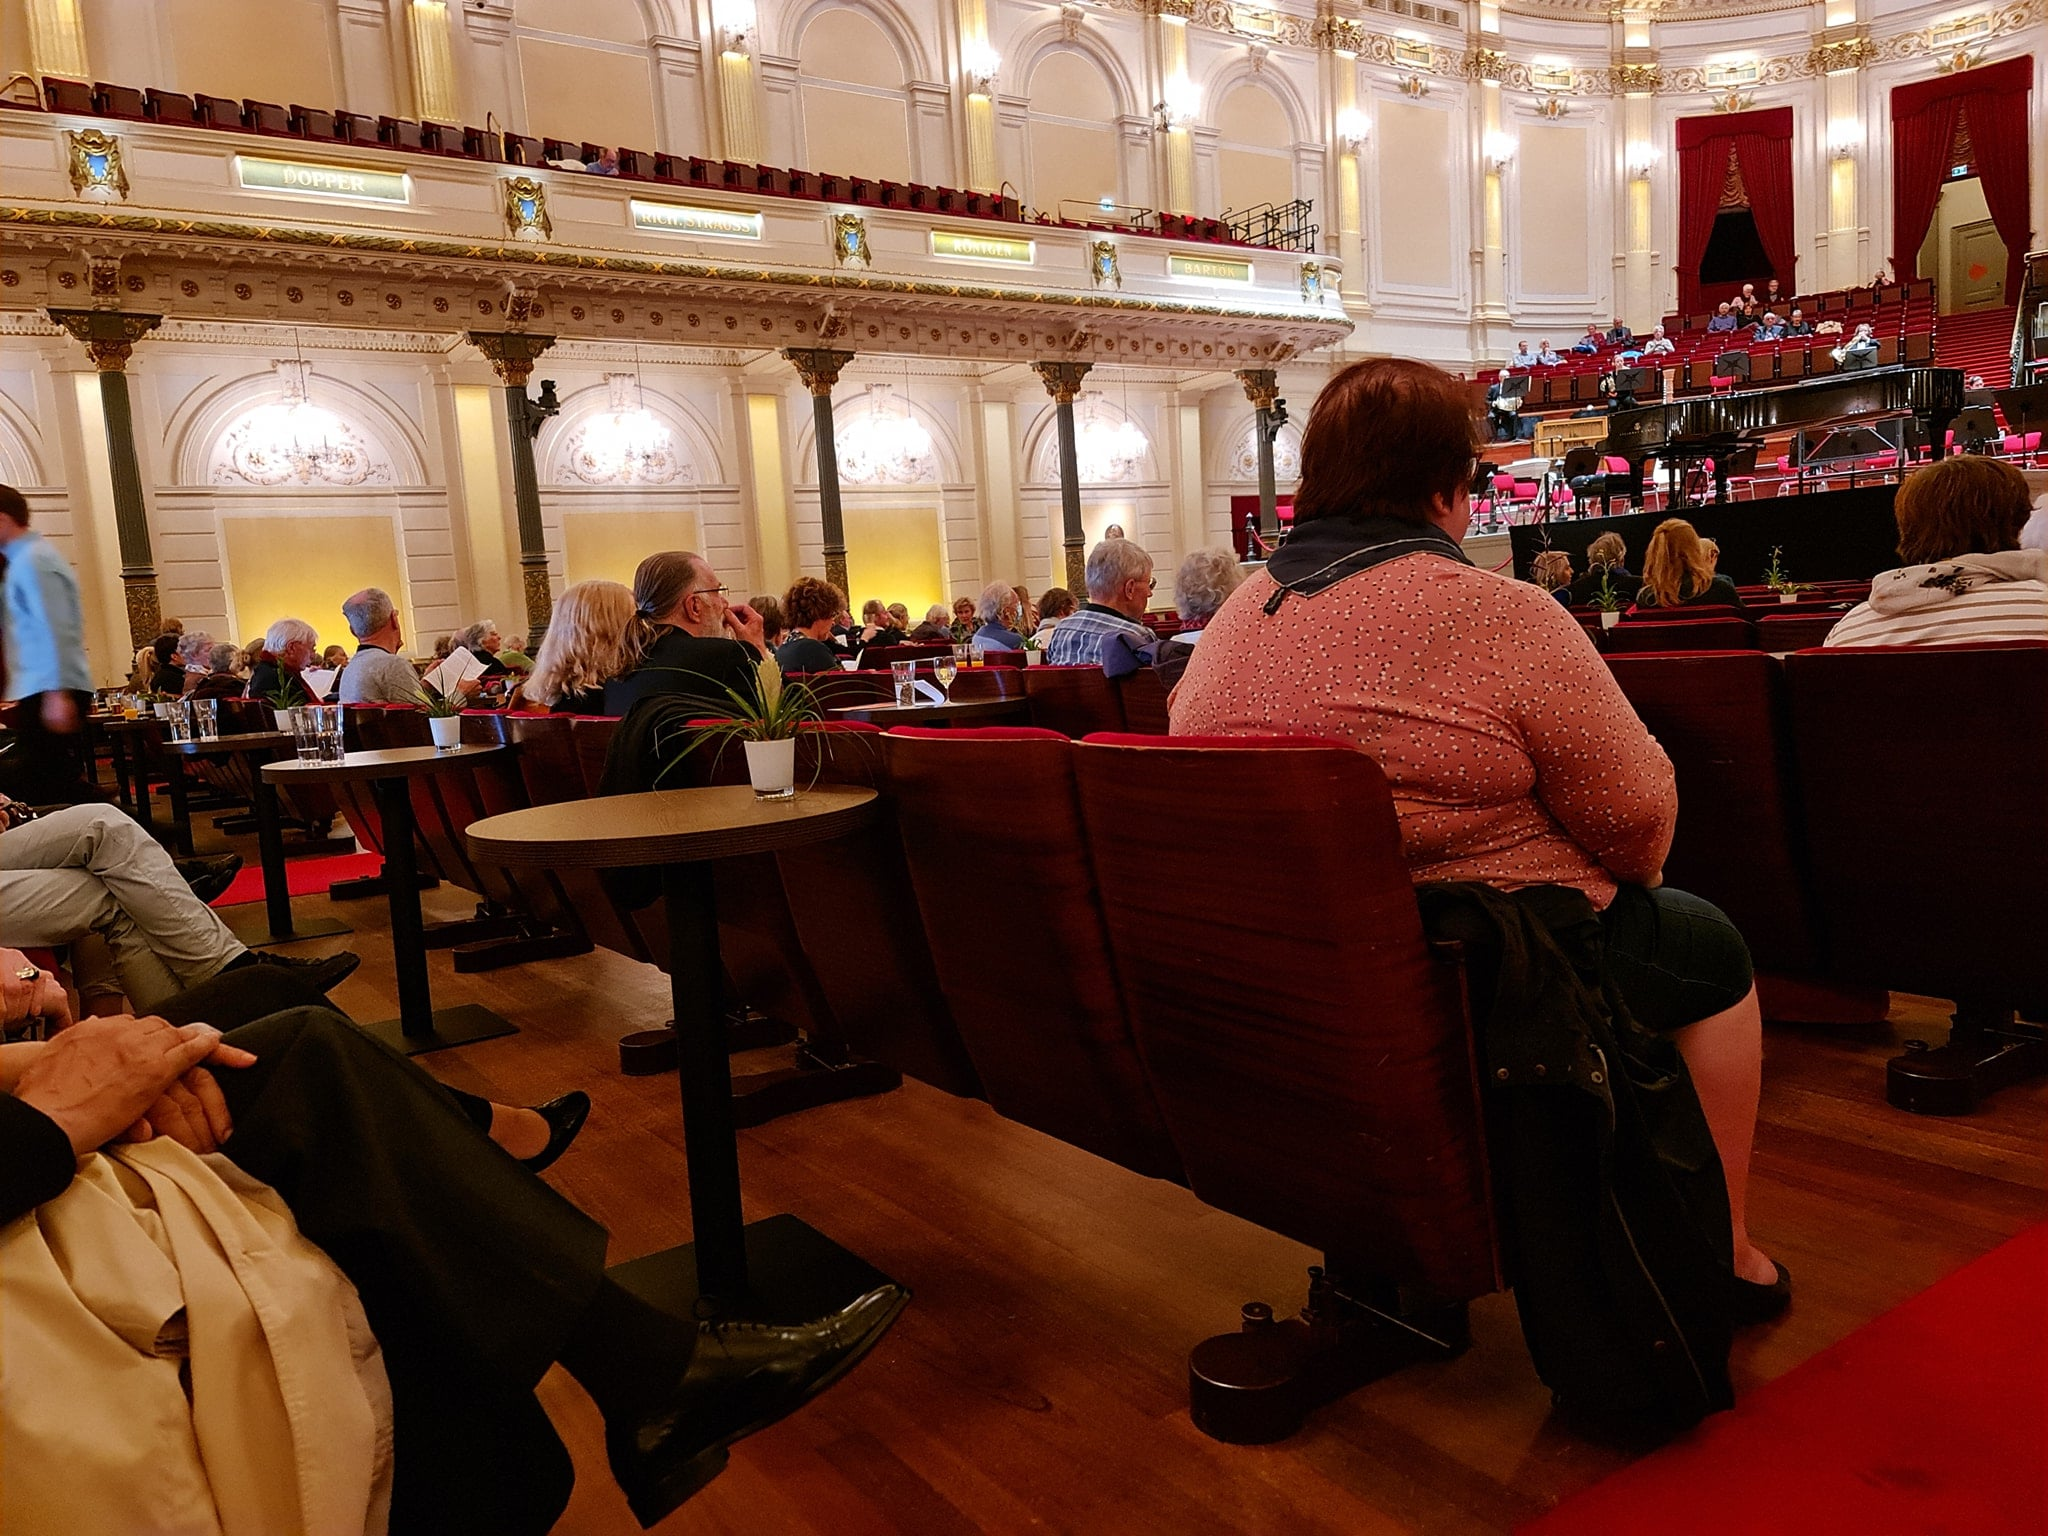 Concertgebouw rips out seats, instals drinks tables